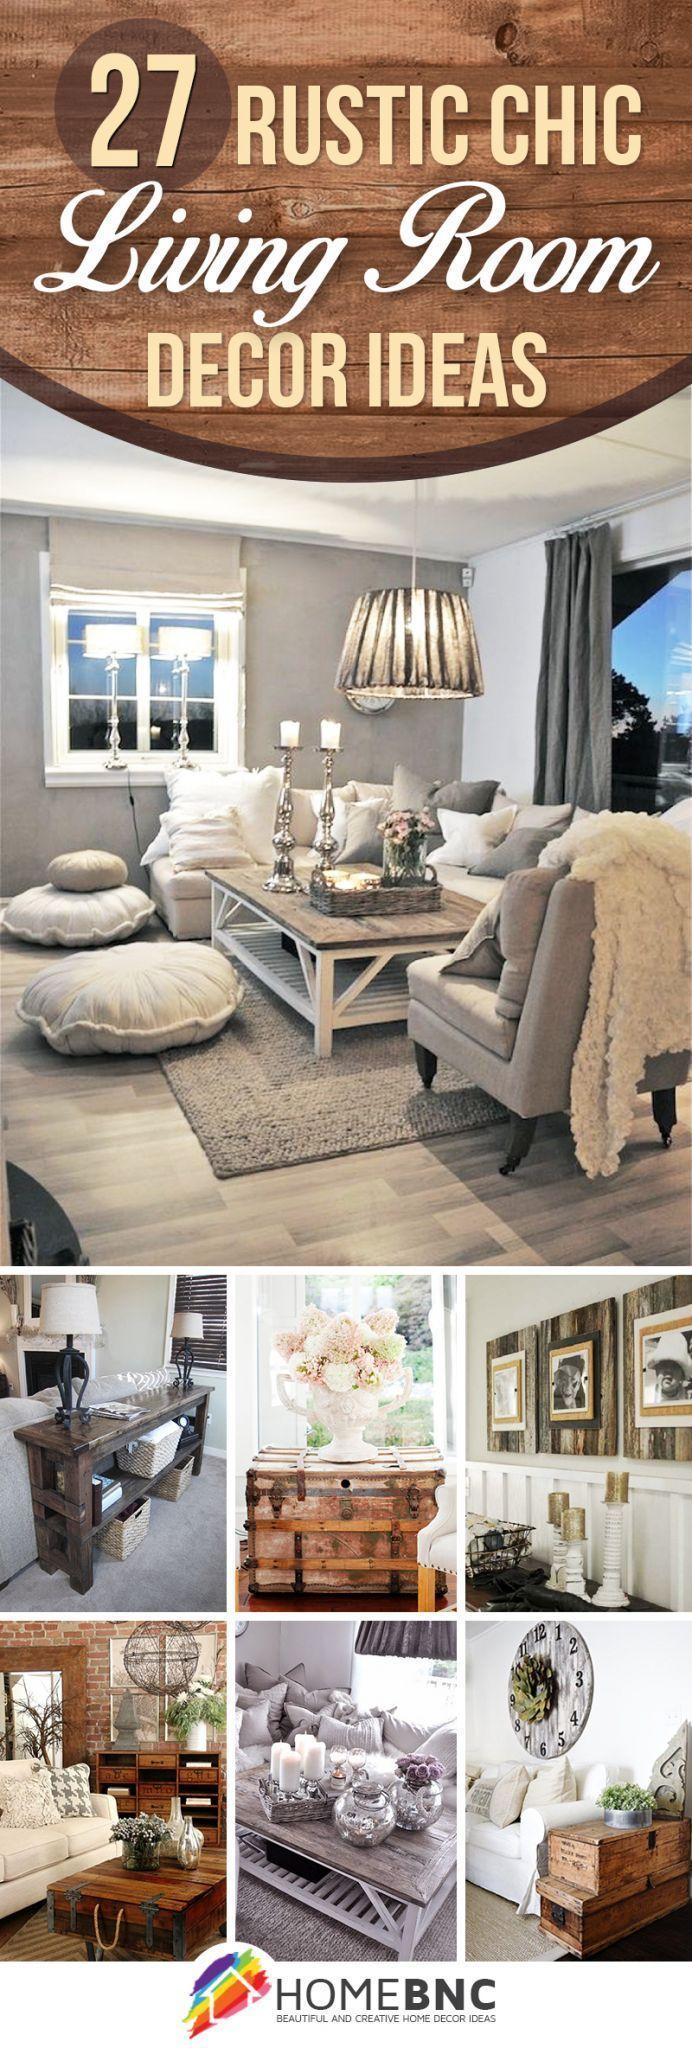 7 Basement Ideas On A Budget Chic Convenience For The Home: Best 25+ Bonus Room Decorating Ideas On Pinterest